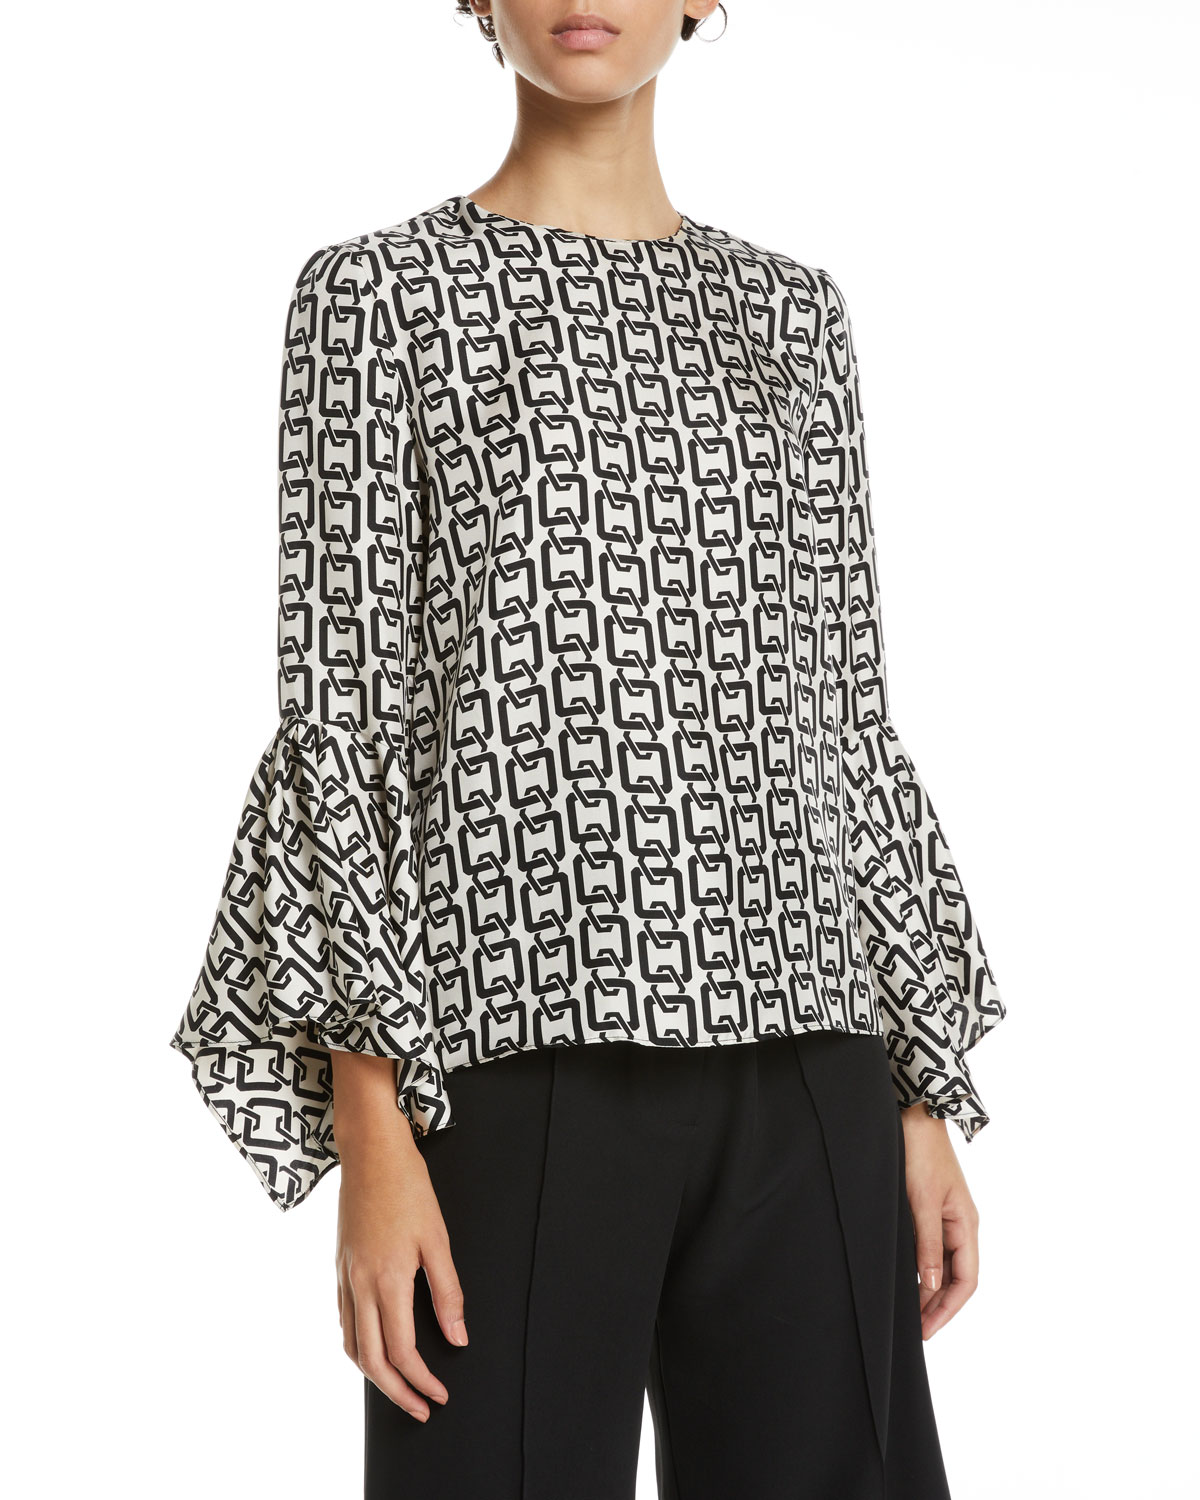 MILLY Holly Chain Print Bell Sleeve Chiffon Top in White